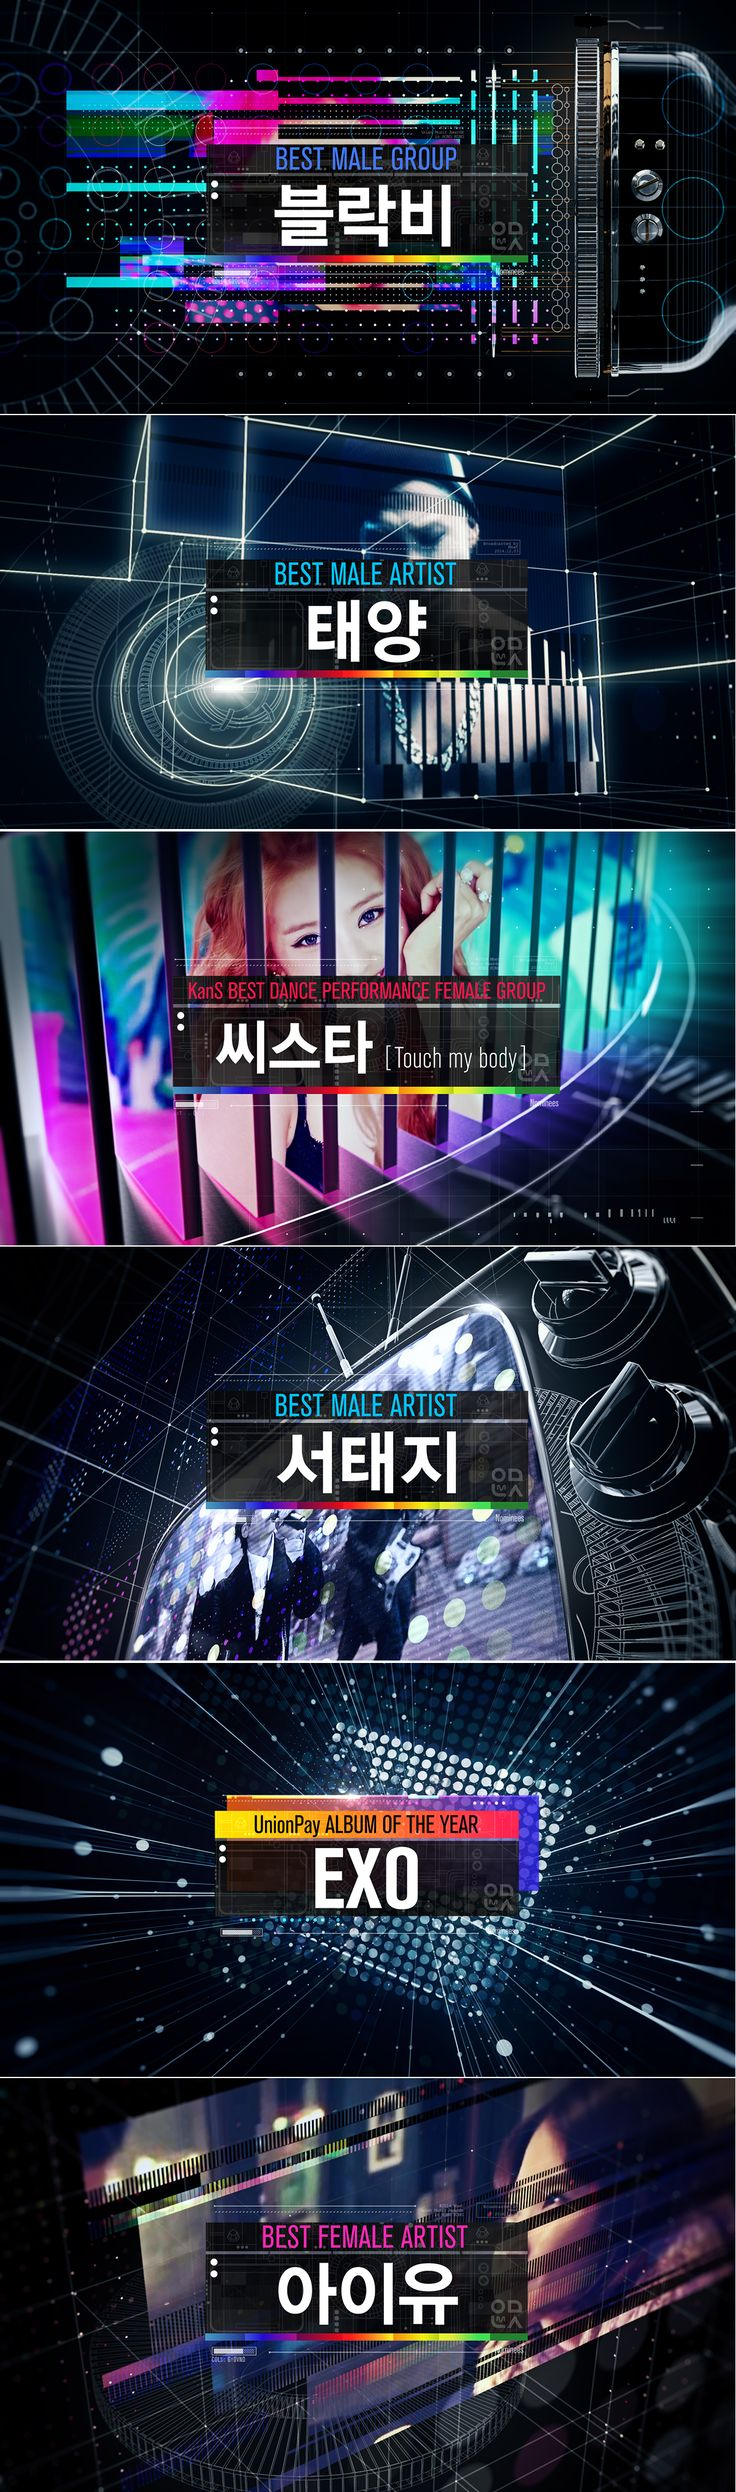 2014 Mnet Asian Music Awards Nominees